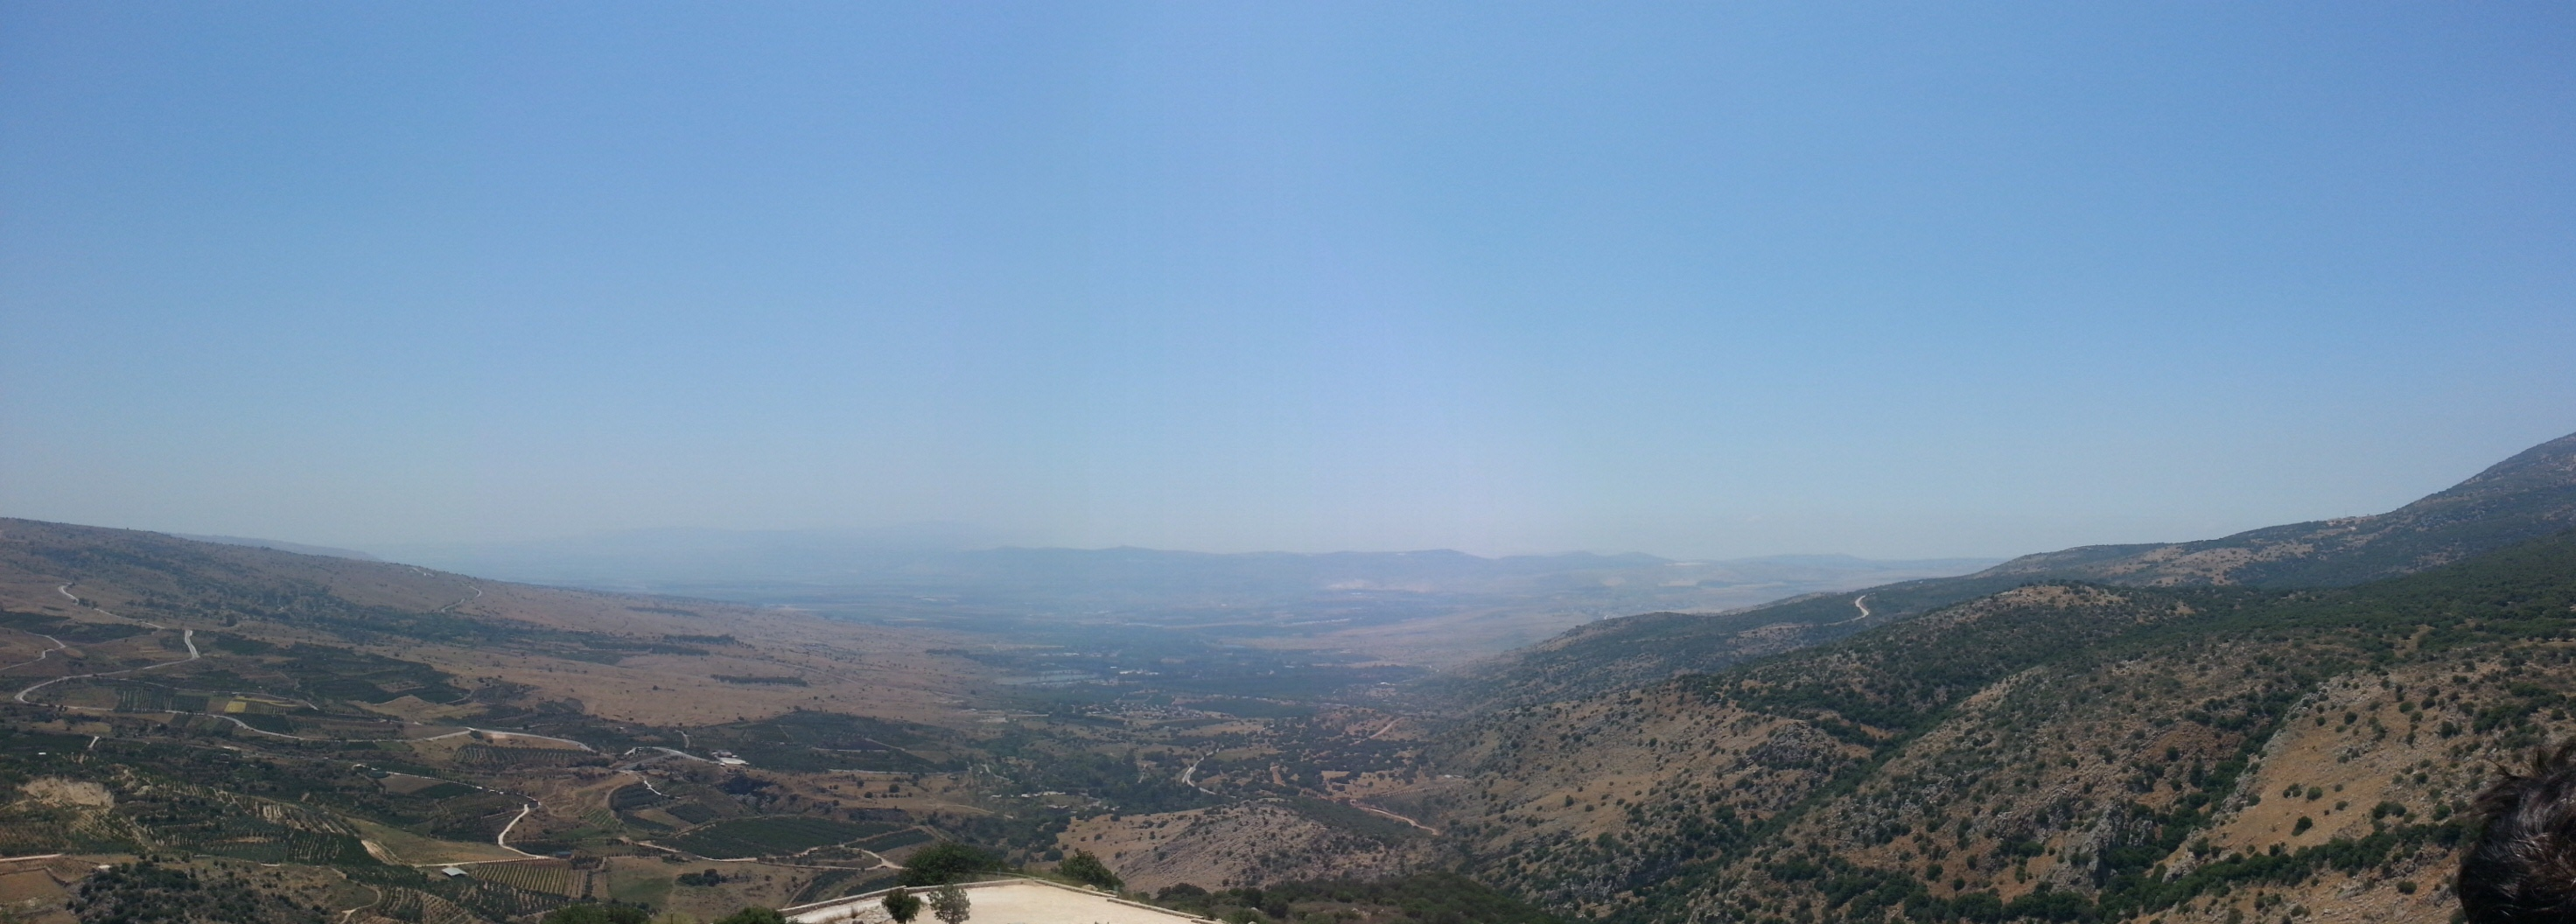 View over the Hula Valley from the Nimrod Fortress